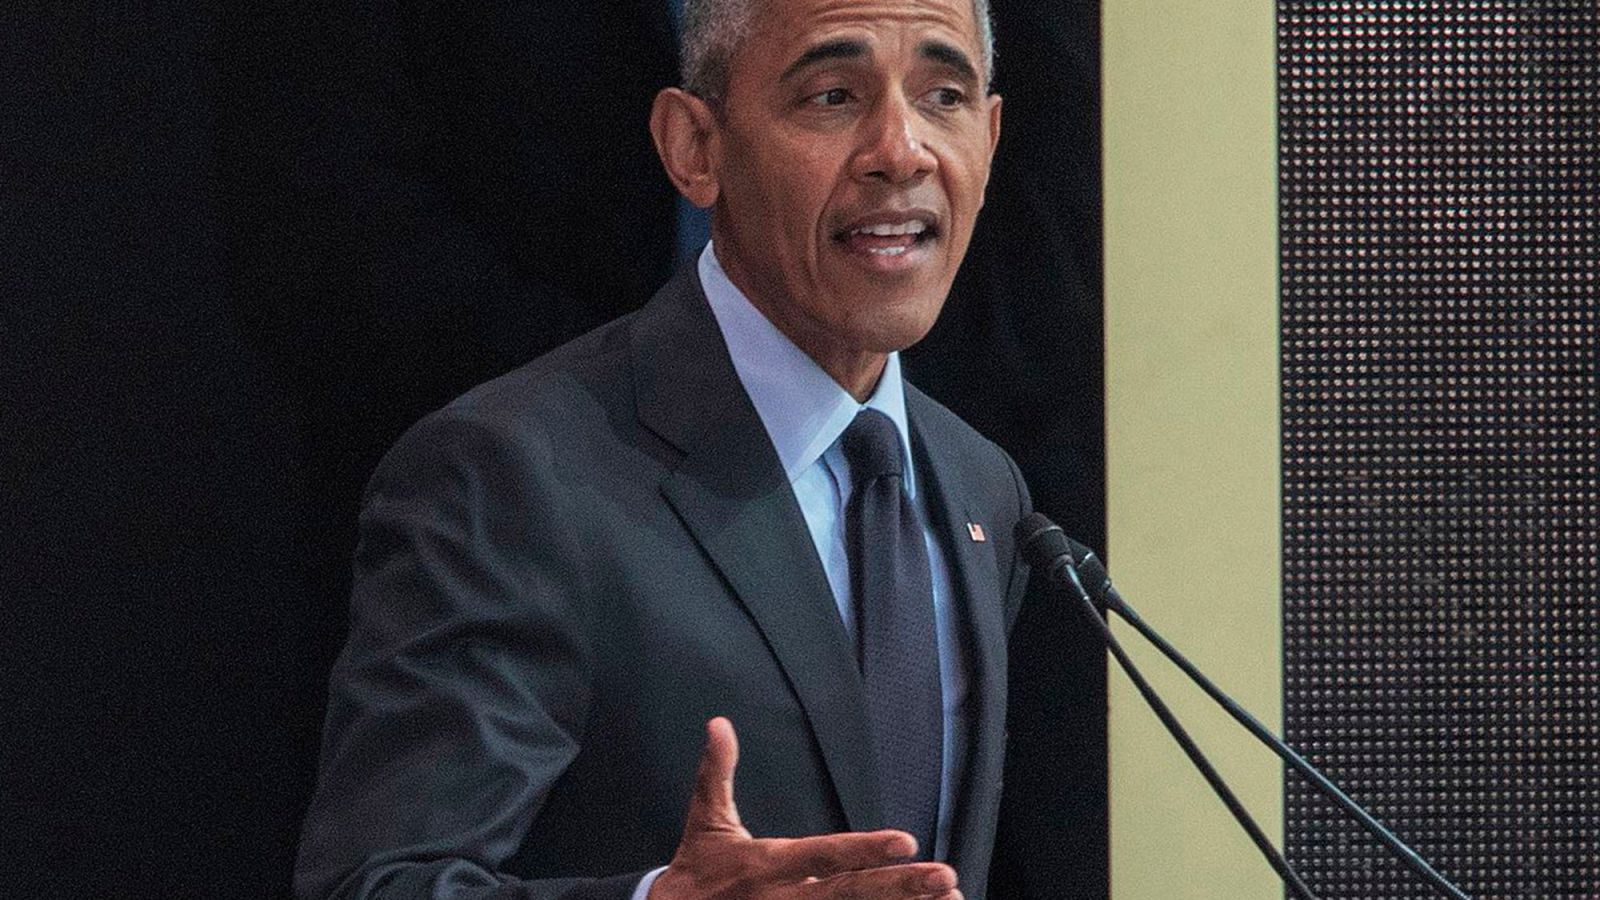 'There Are Things That Exist Which Are Not Good,' Says Obama In Stunning Rebuke Of Trump https://t.co/BTuJKbd0RO https://t.co/6CuB2HcRX5